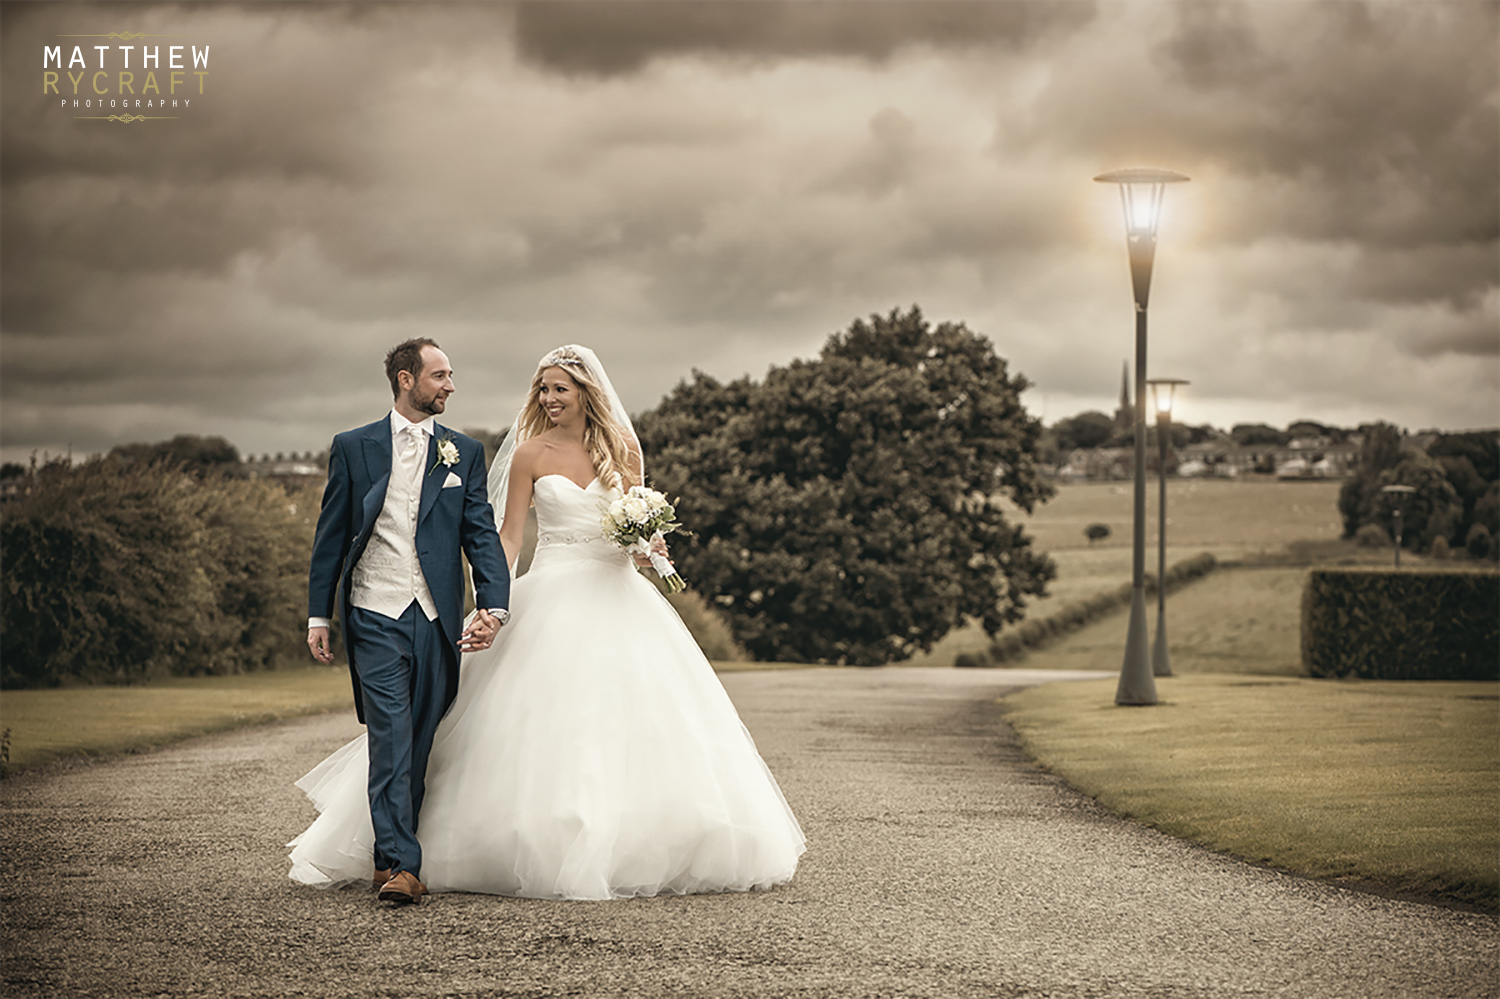 Bride and groom walking holding hands copy